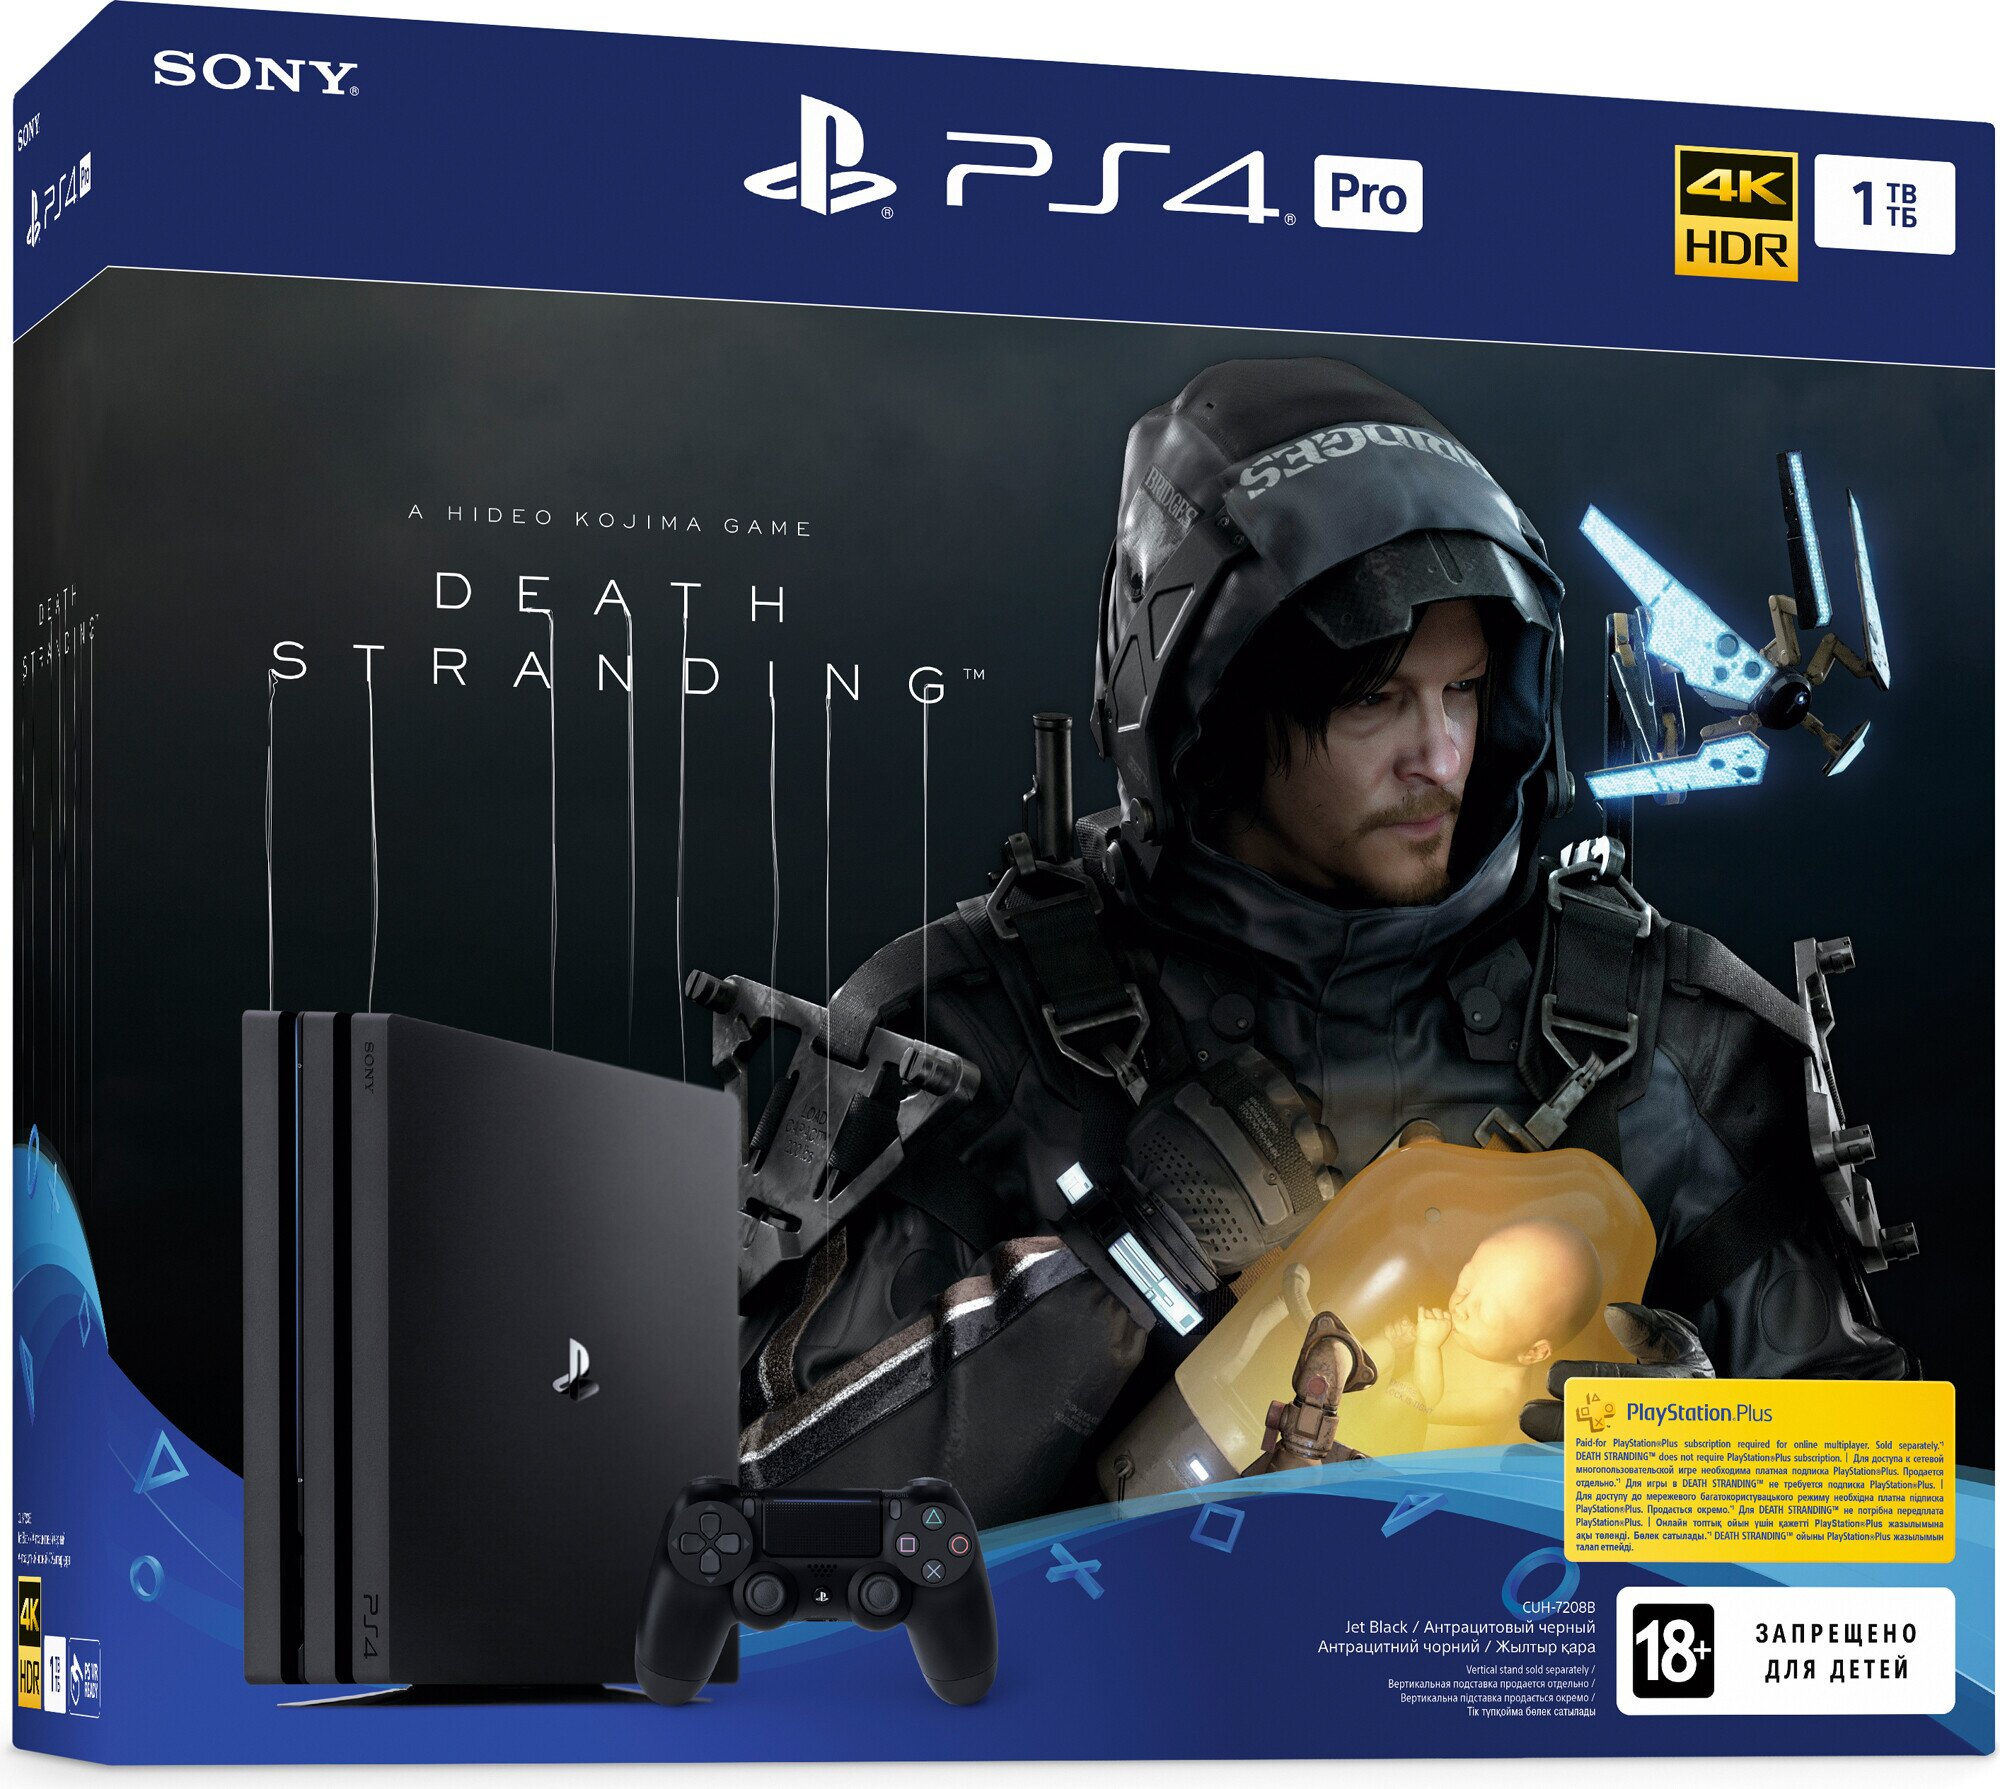 Ігрова приставка Sony PlayStation 4 Pro (1000Gb) Black + Death Stranding